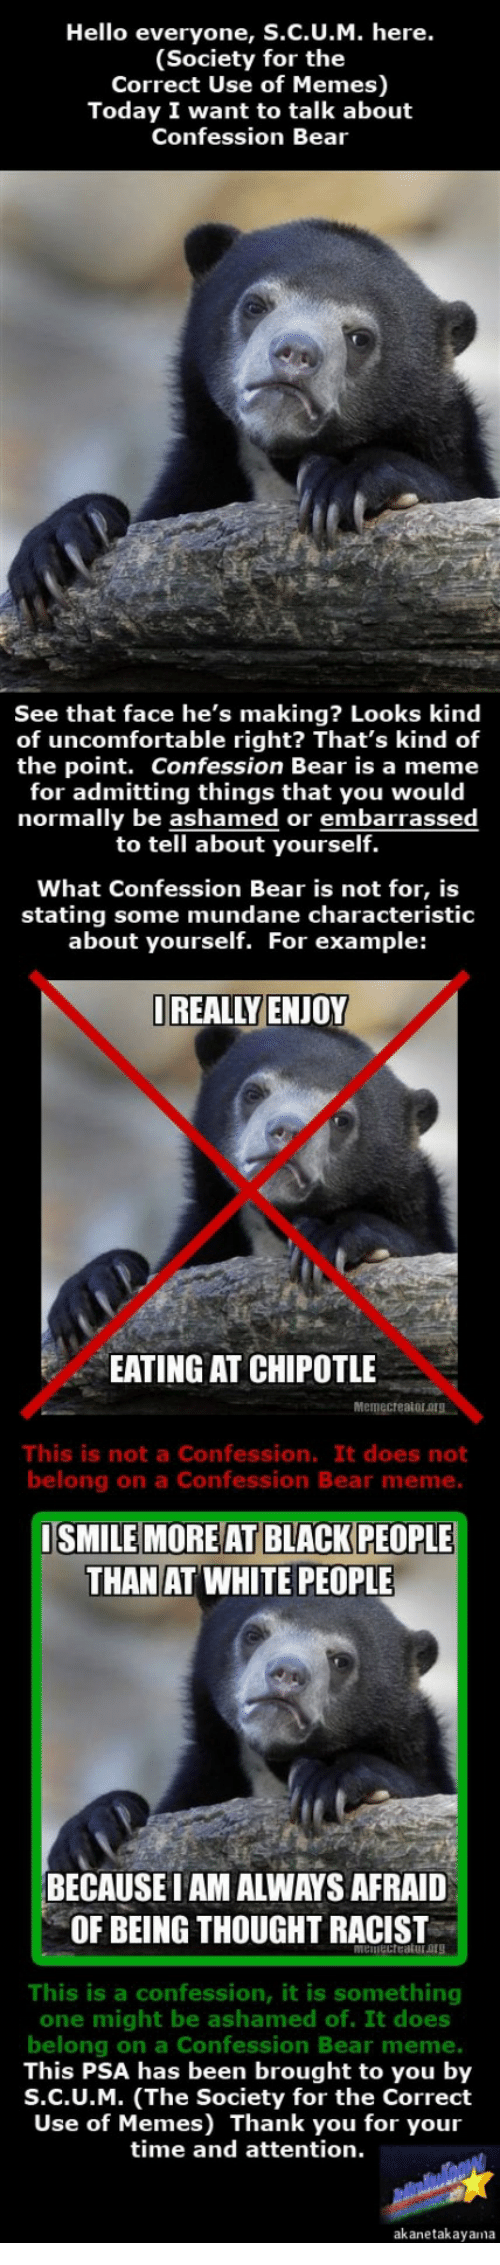 Chipotle, Hello, and Meme: Hello everyone, S.C.U.M. here.  (Society for the  Correct Use of Memes  Today I want to talk about  Confession Bear  See that face he's making? Looks kind  of uncomfortable right? That's kind of  the point. Confession Bear is a meme  for admitting things that you would  normally be ashamed or embarrassed  to tell about yourself.  What Confession Bear is not for  is  stating some mundane characteristic  about yourself. For example:  OREAL WENOY  EATING AT CHIPOTLE  This is not a Confession. It does not  belong on a Confession Bear meme  SMILE MORE AT BLACK PEOPLE  THAN AT WHITE PEOPLE  BECAUSEIAM ALWAYS AFRAID  OF BEING THOUGHT RACIST  This is a confession, it is something  one might be ashamed of. It does  belong on a Confession Bear meme.  This PSA has been brought to you by  S.C.U.M. (The Society for the Correct  Use of Memes) Thank you for your  time and attention.  akane takayana